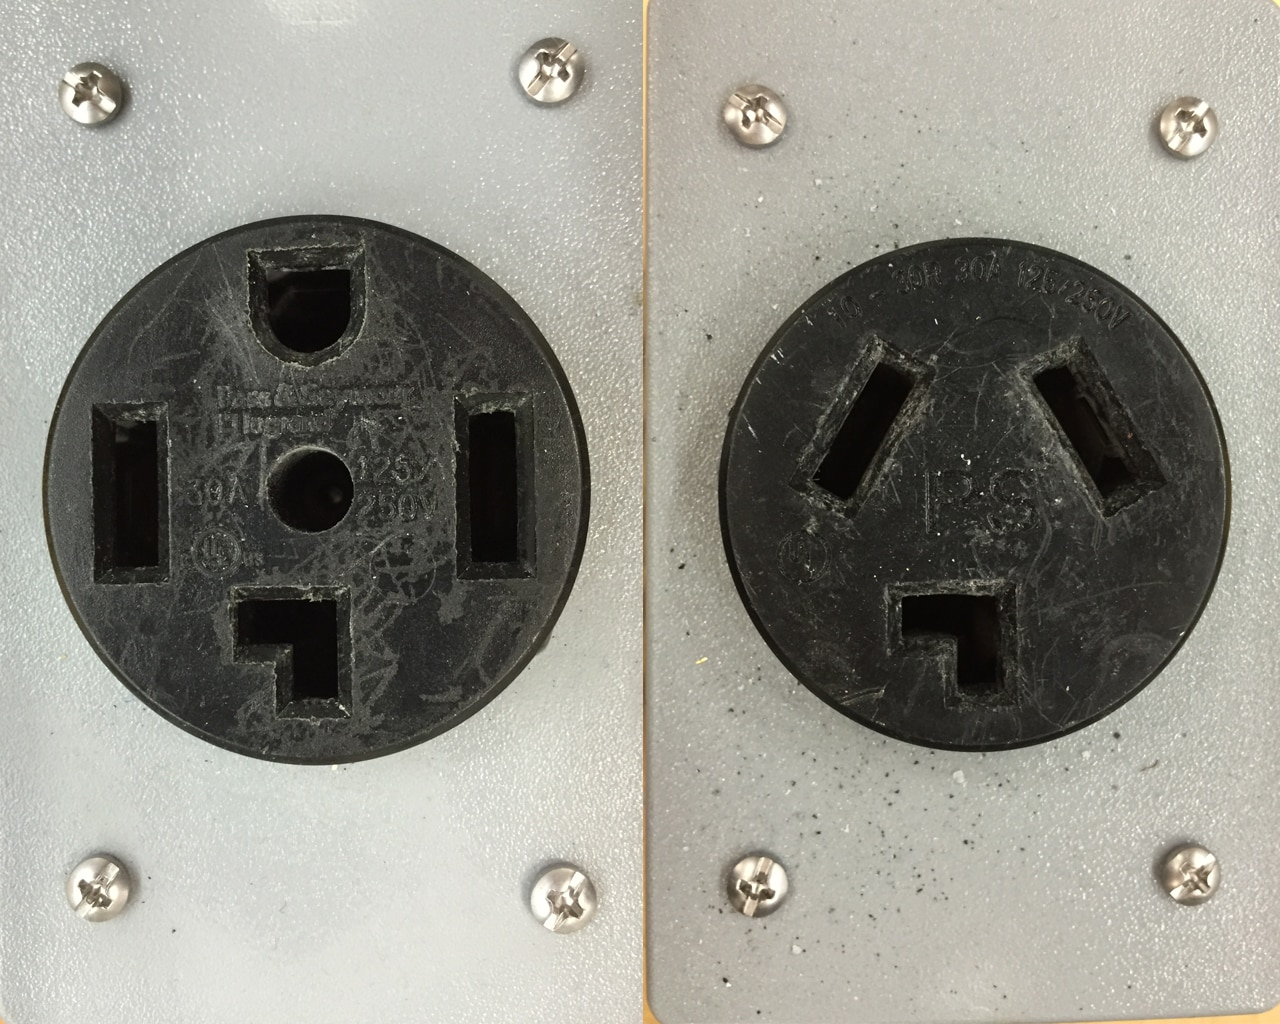 hight resolution of 3 prong vs 4 prong dryer outlets what s the difference